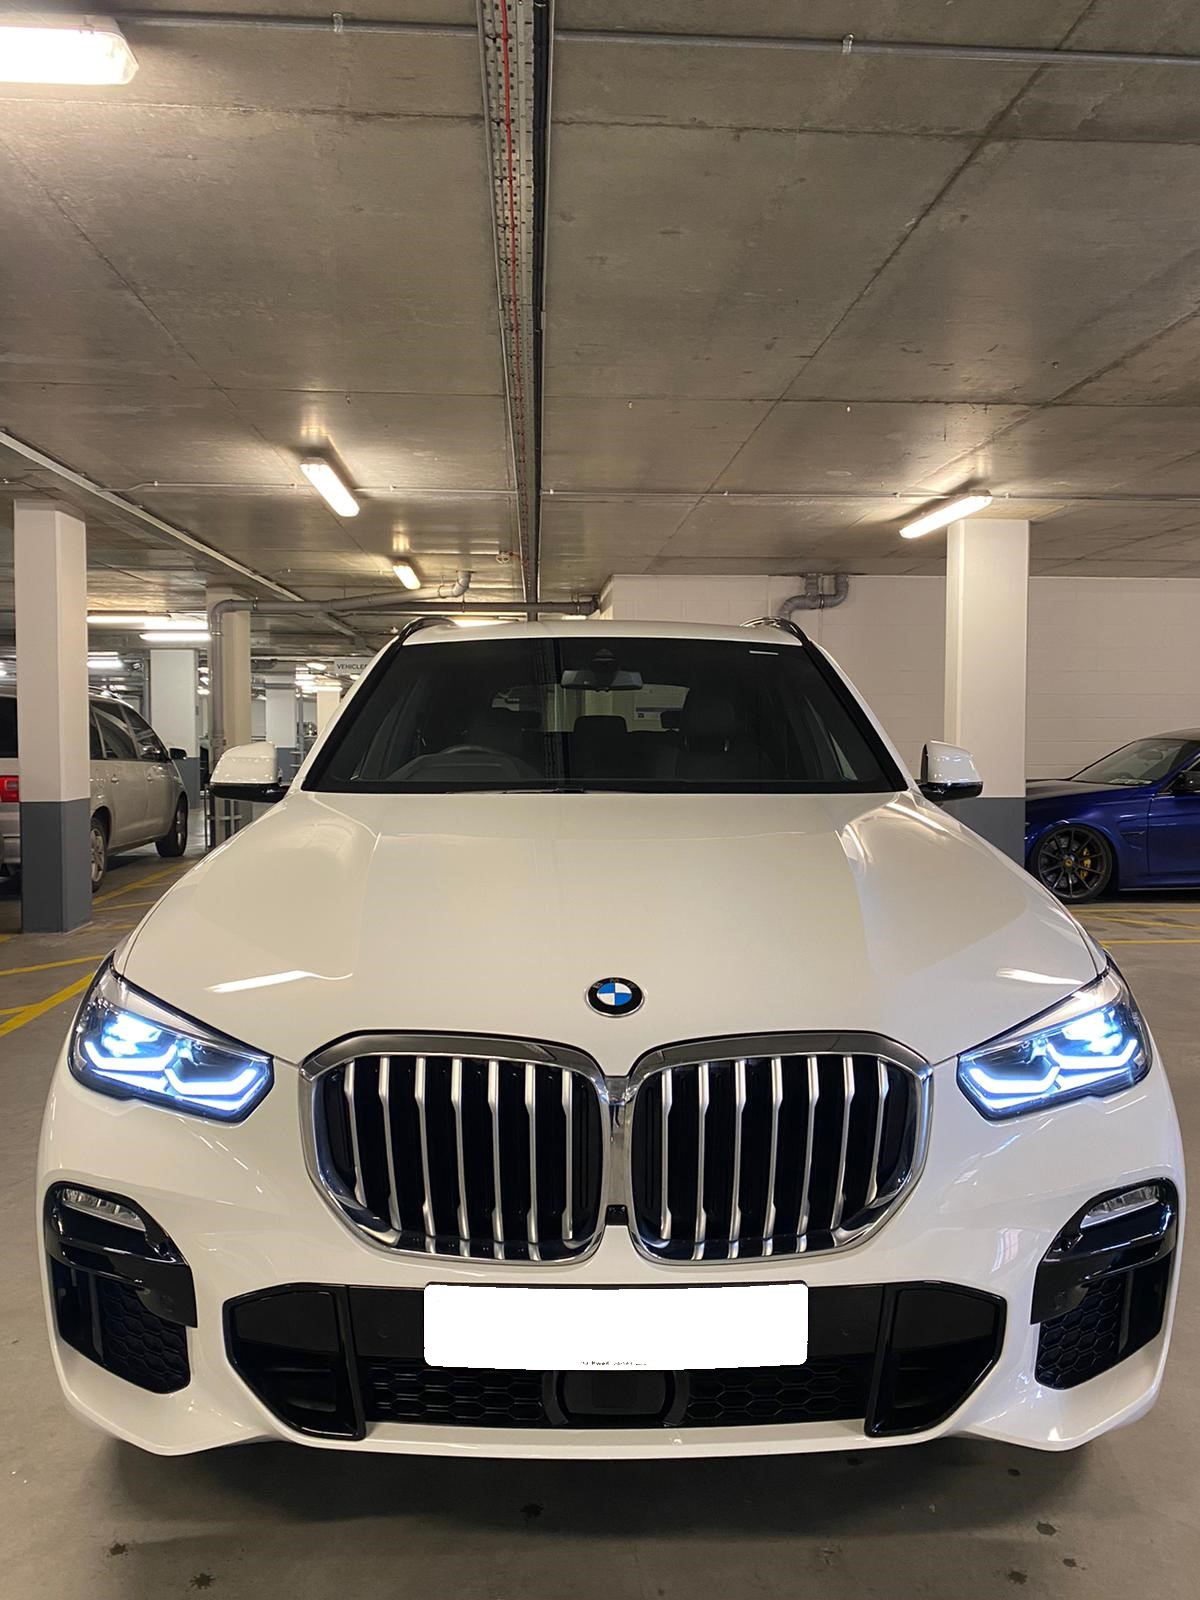 BMW X5 3.0 XDRIVE 30D M SPORT StationWagon